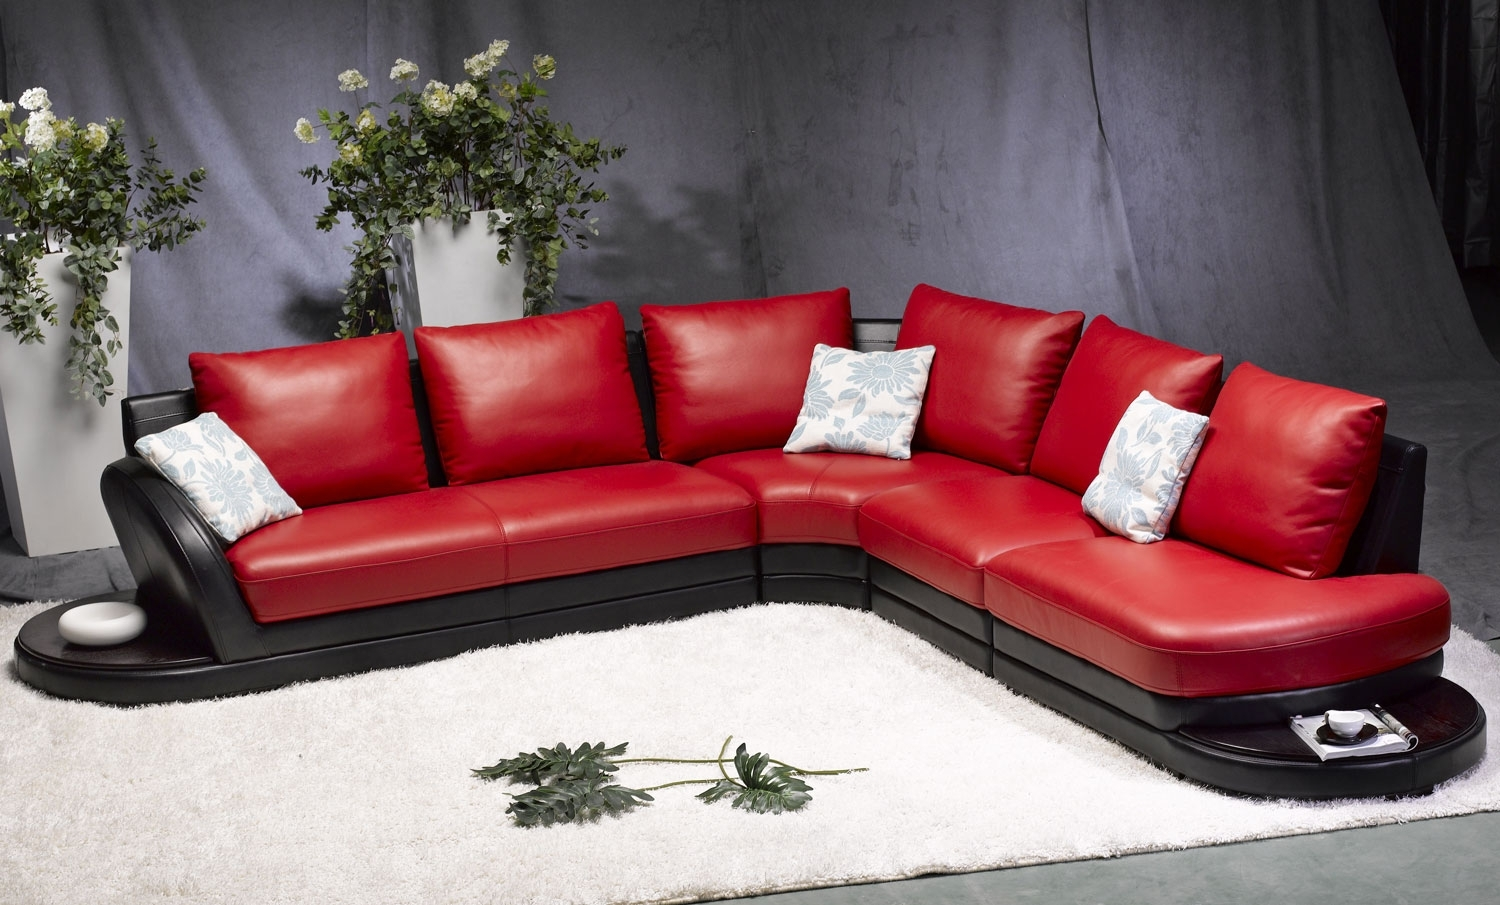 Sofas: Red Sectional Sofa | Reclining Sectional Sofas For Small within Small Red Leather Sectional Sofas (Image 12 of 15)